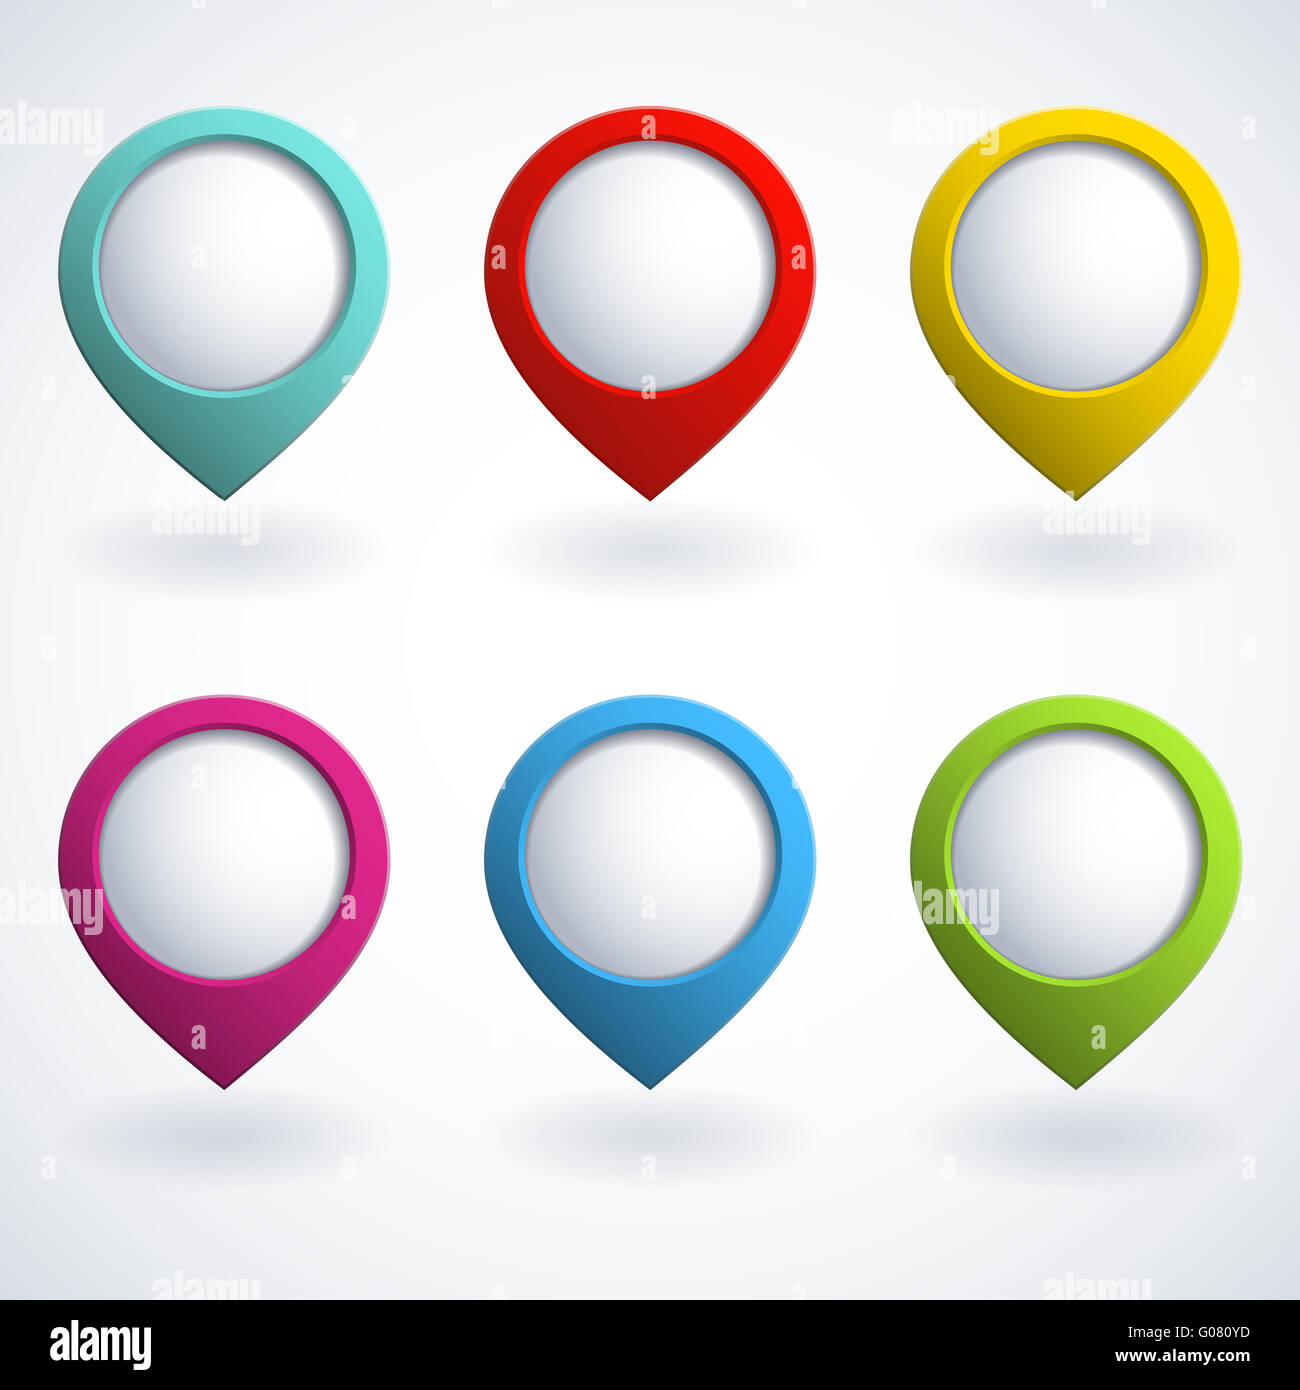 3d buttons - Stock Image